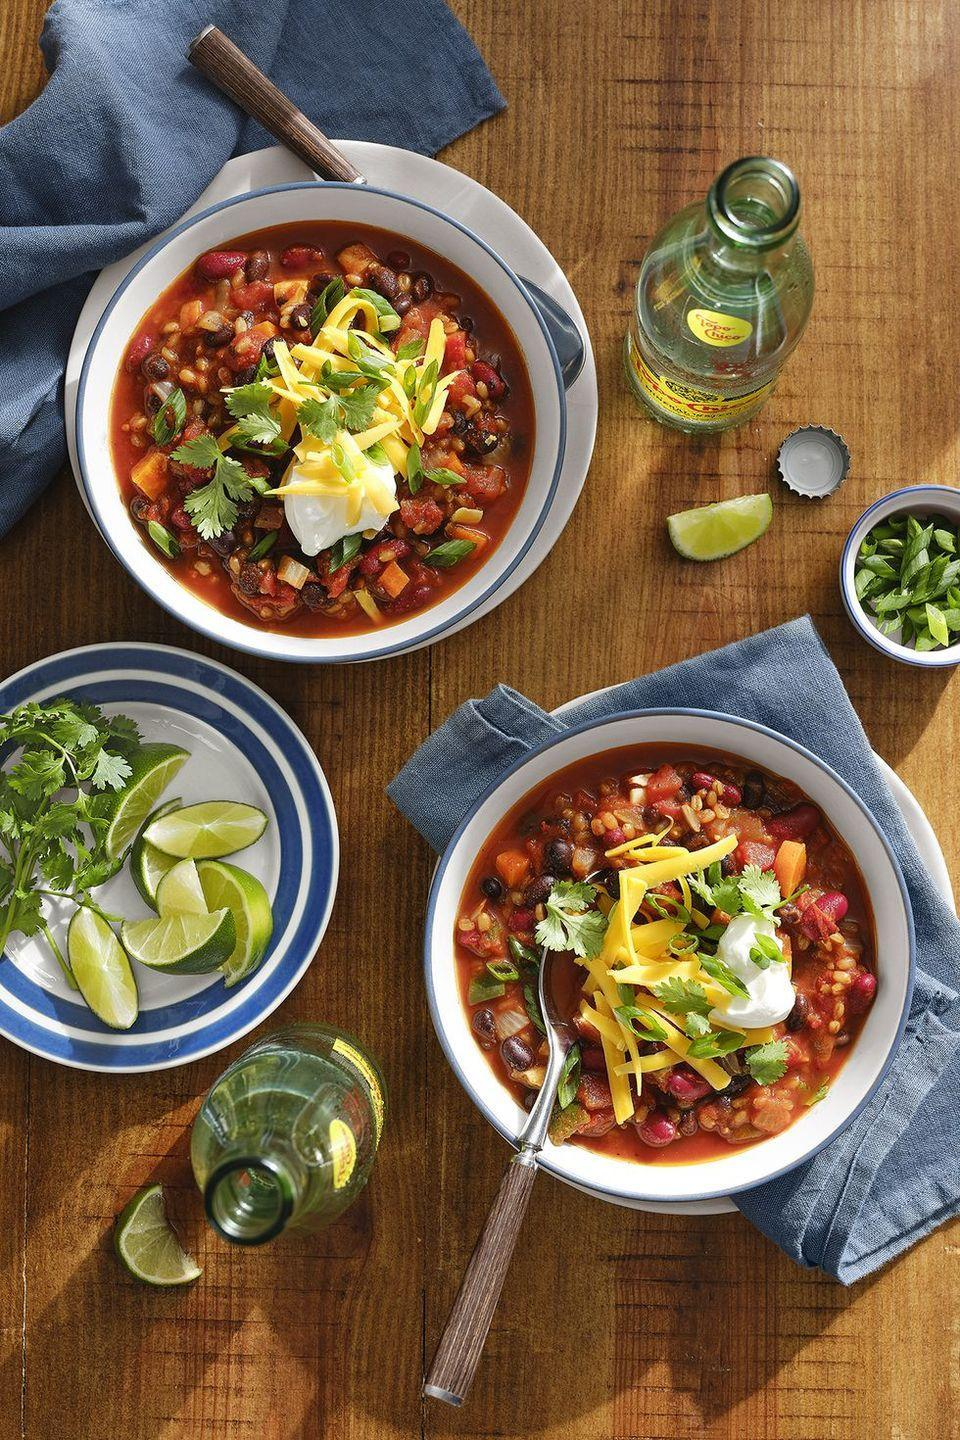 "The secret ingredient that keeps this classic dish every bit as meaty and filling as it's beefier brethren? Wheat berries, which you can pick up in the grain section of most grocery stores. <a href=""https://www.countryliving.com/food-drinks/a30417636/vegetarian-chili-with-grains-beans-recipe/"" rel=""nofollow noopener"" target=""_blank"" data-ylk=""slk:Get the recipe"" class=""link rapid-noclick-resp""><strong>Get the recipe</strong></a><strong>.</strong> <a href=""https://www.amazon.com/Berries-Non-GMO-Verified-Non-Irradiated-Certified/dp/B004LYXHKG/?tag=syn-yahoo-20&ascsubtag=%5Bartid%7C10050.g.1186%5Bsrc%7Cyahoo-us"" class=""link rapid-noclick-resp"" rel=""nofollow noopener"" target=""_blank"" data-ylk=""slk:SHOP WHEAT BERRIES""><strong>SHOP WHEAT BERRIES</strong></a>"